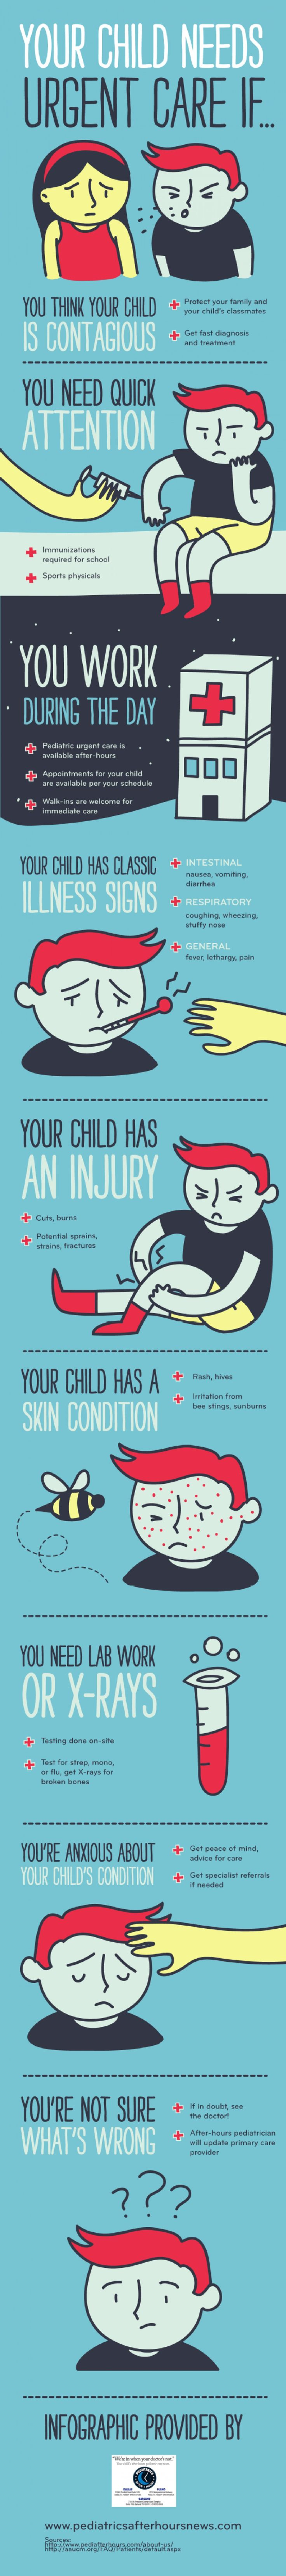 Your Child Needs Urgent Care If... Infographic